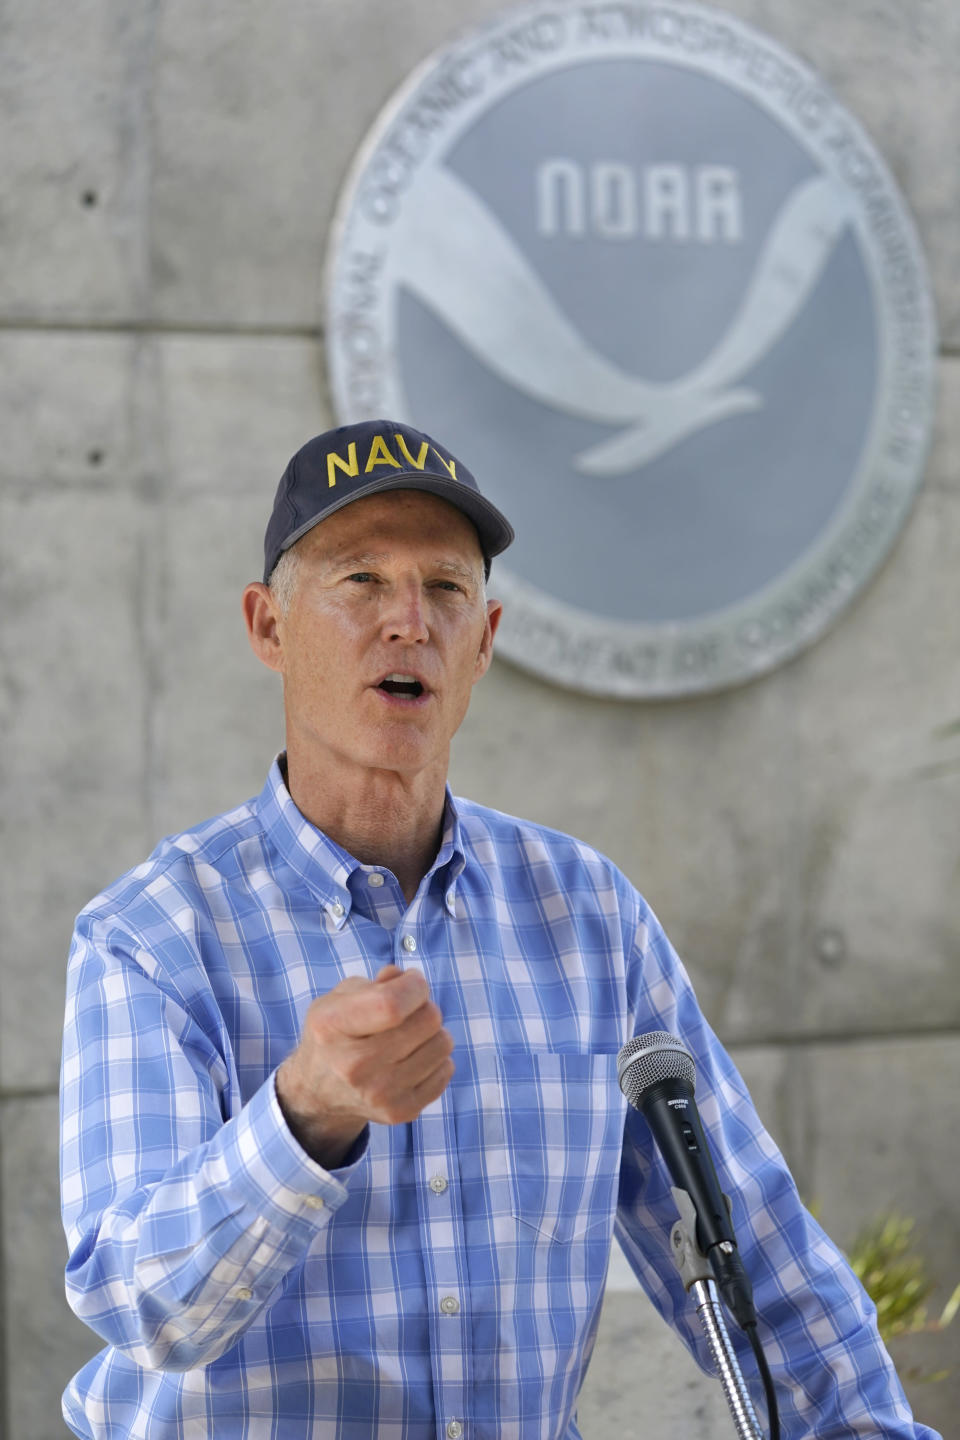 Senator Rick Scott, R-Fla., speaks during a news conference after having toured the National Hurricane Center, Tuesday, June 1, 2021, in Miami. Tuesday marks the start of the 2021 Atlantic hurricane season which runs to Nov. 30. (AP Photo/Wilfredo Lee)